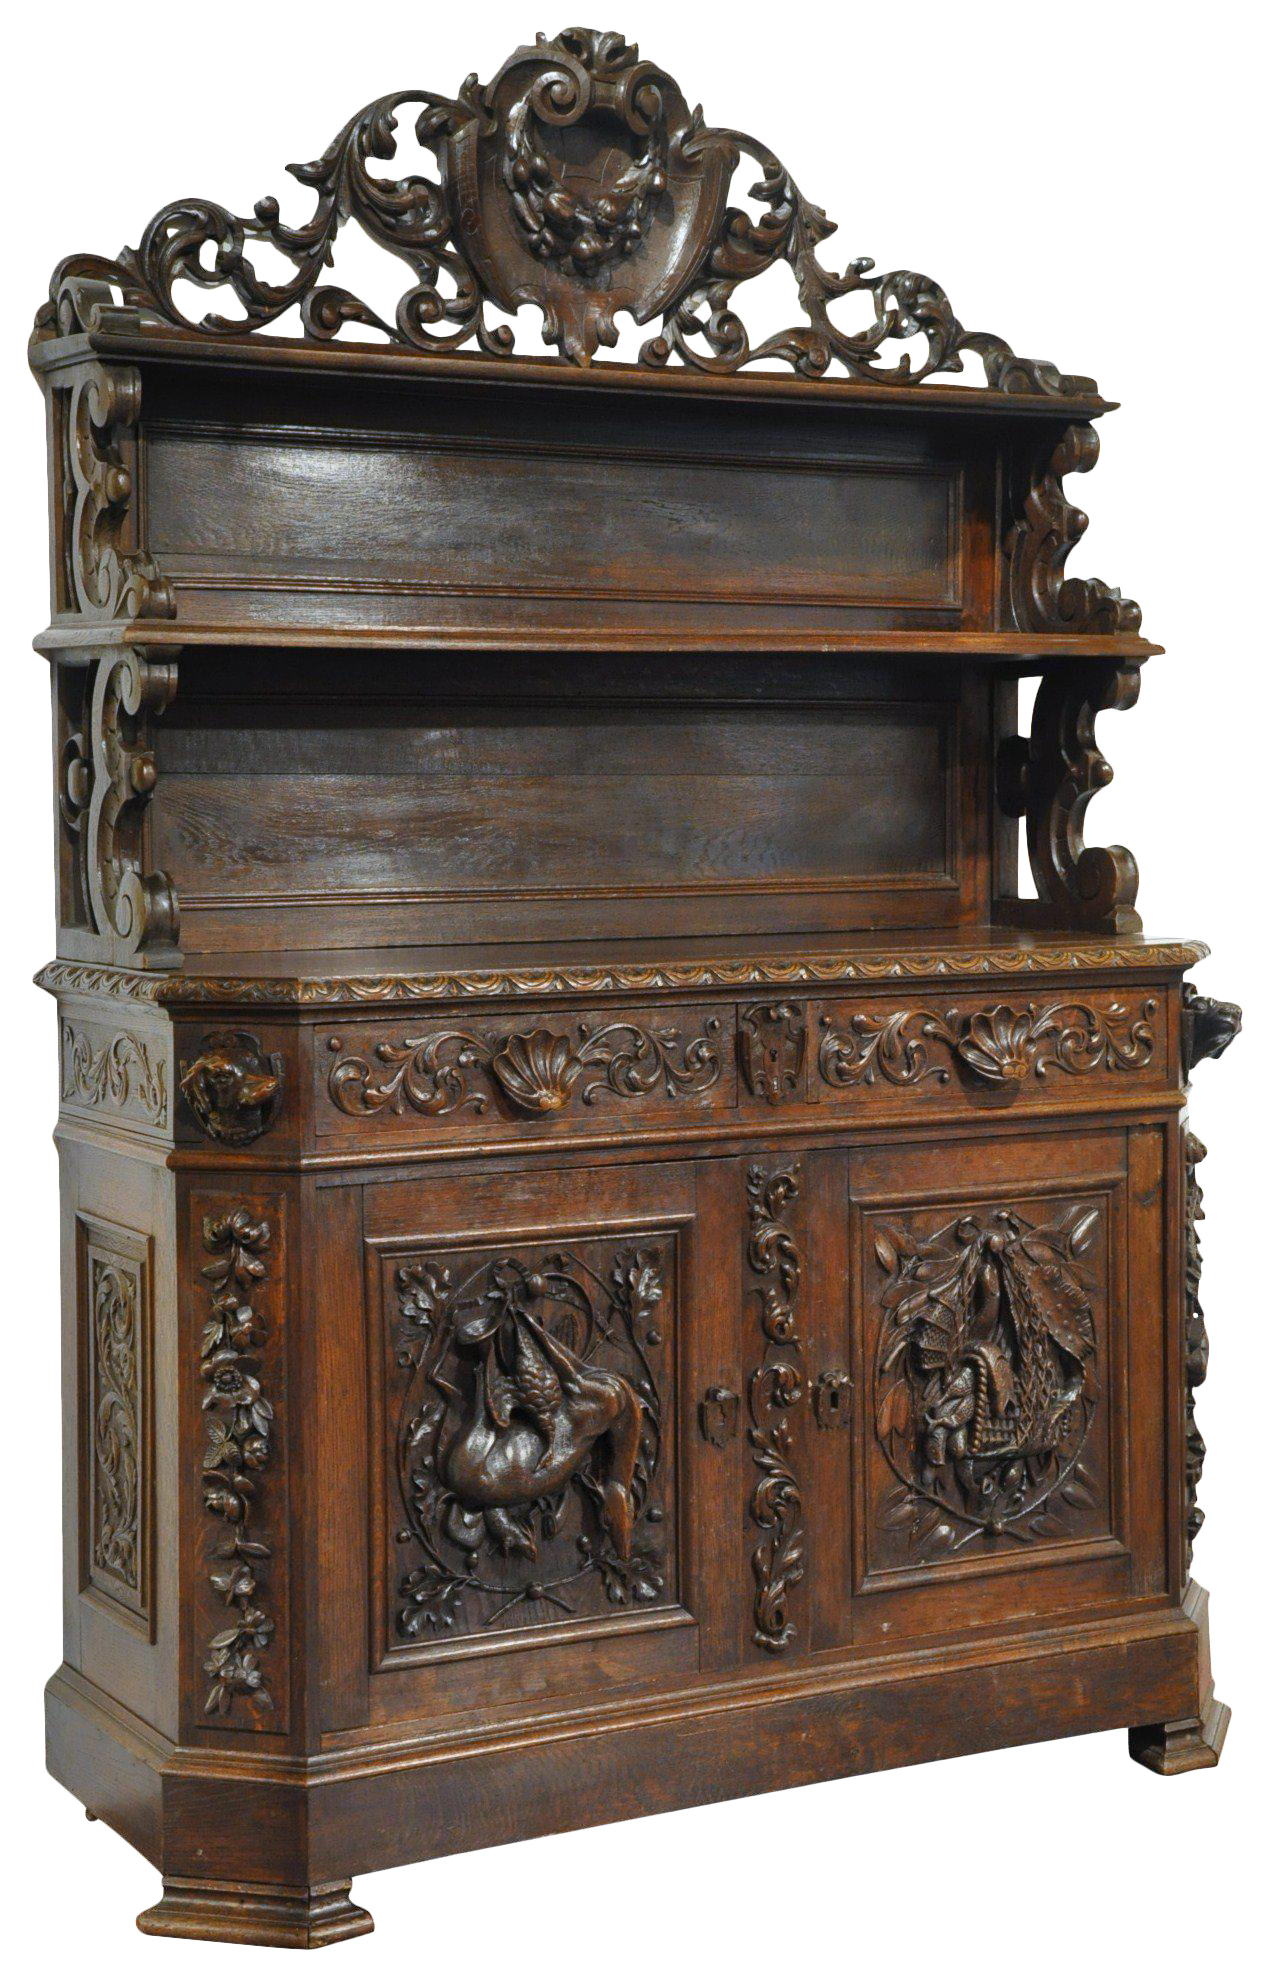 Charming 19th Century French Carved Black Forest Buffet With Display Shelf